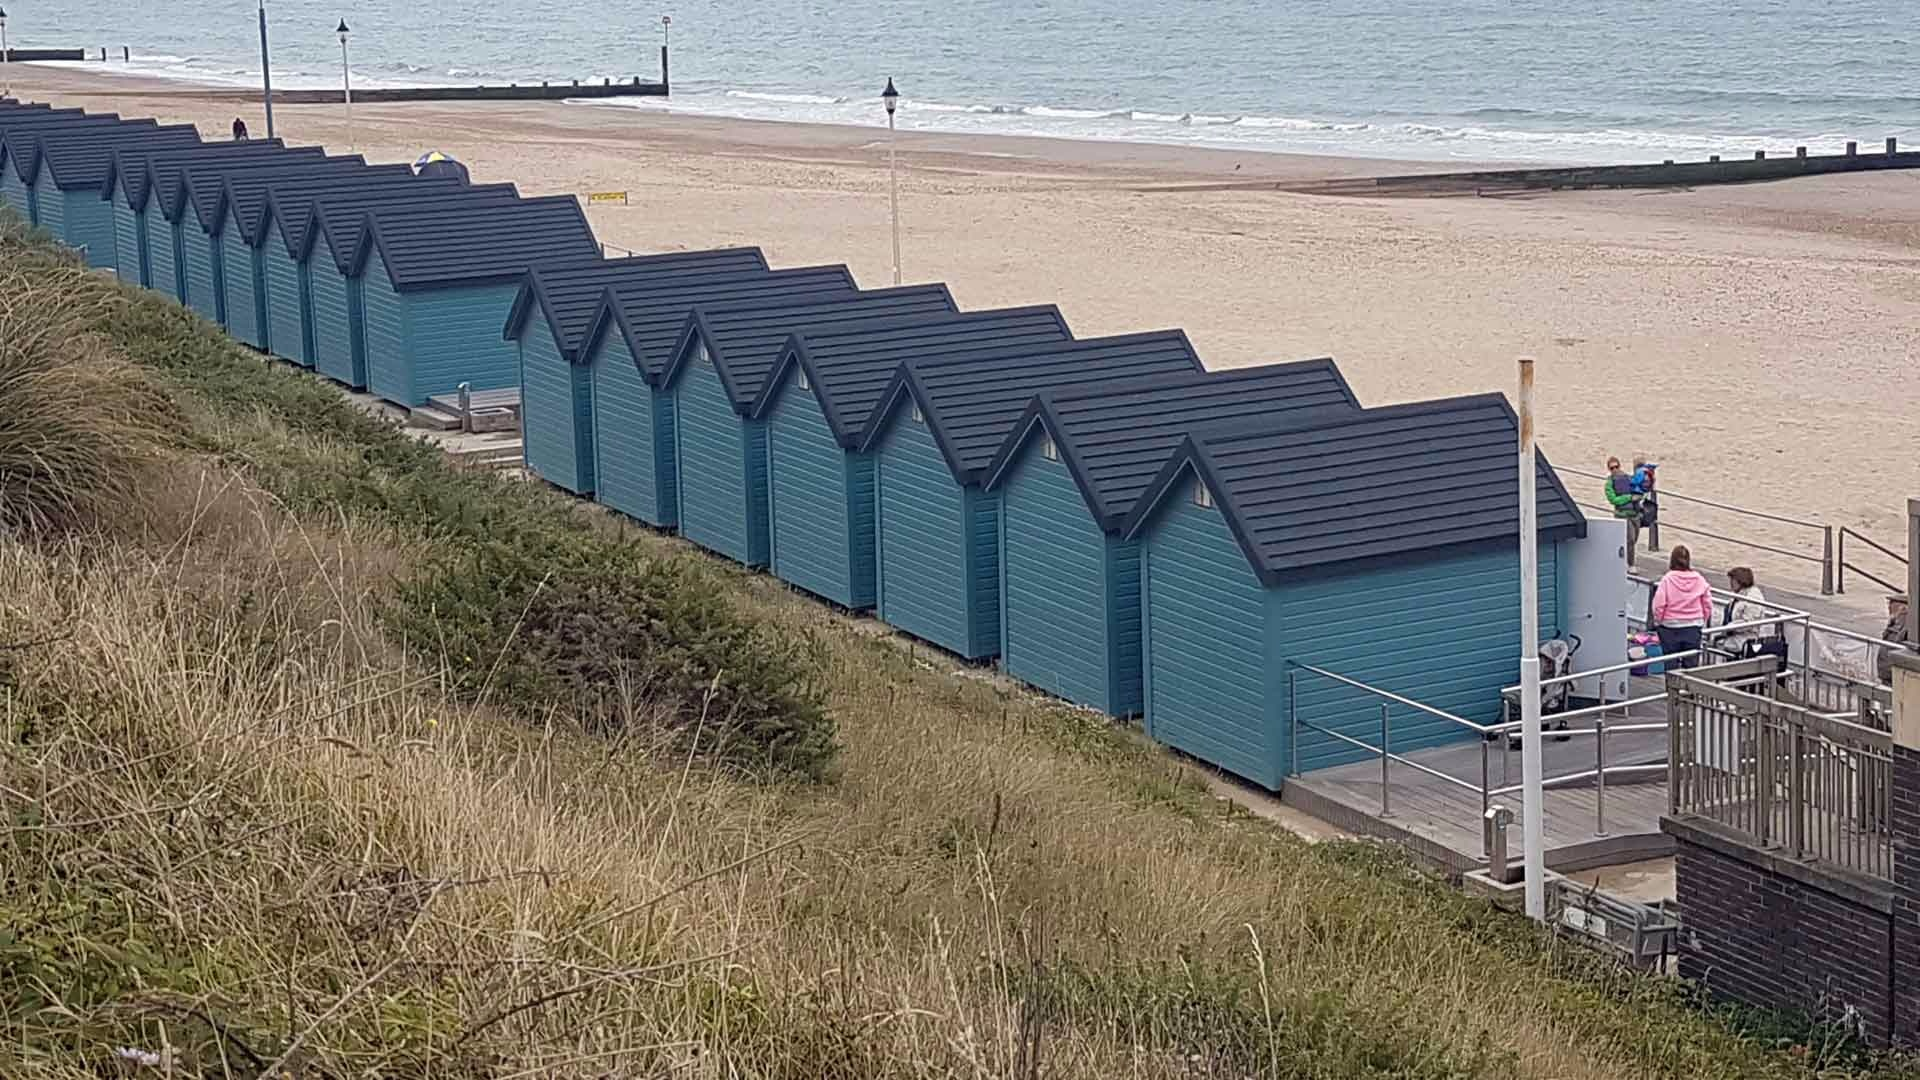 <b>southbourne-on-sea-gallery5.jpg</b> <br/> New style Huts at Southbourne